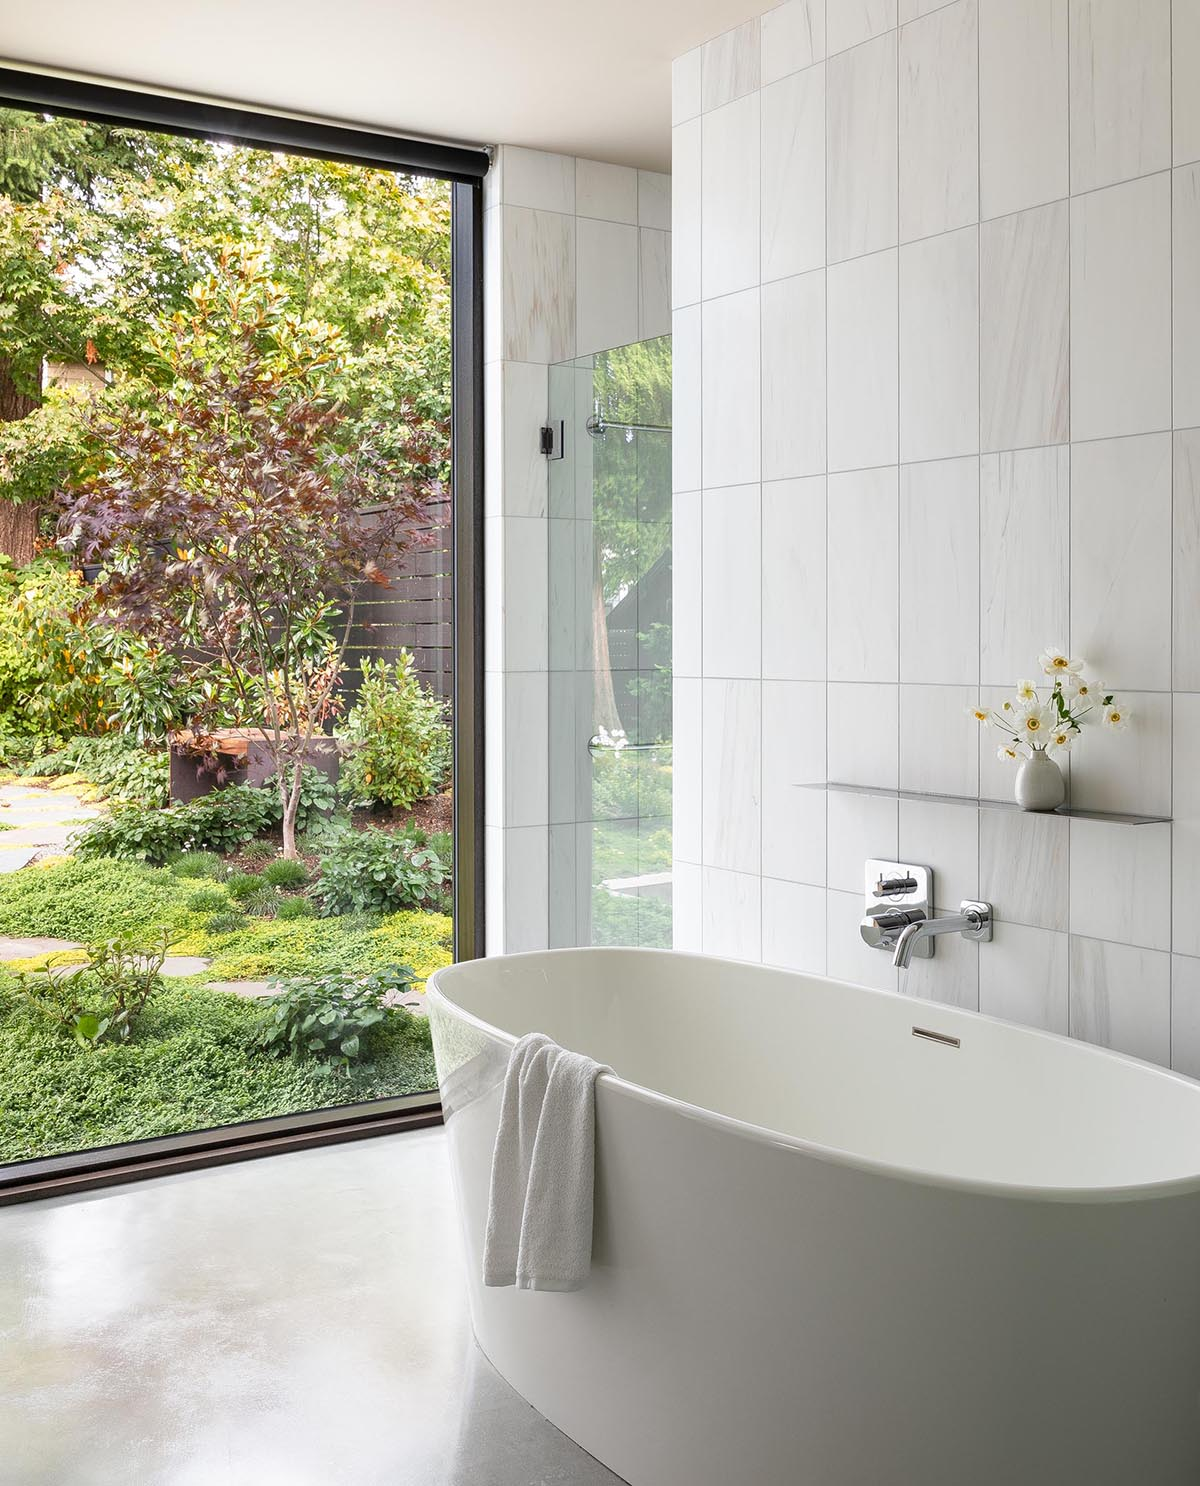 In this modern master bathroom, white tiles provide a backdrop for a freestanding bathtub and a walk-in shower.